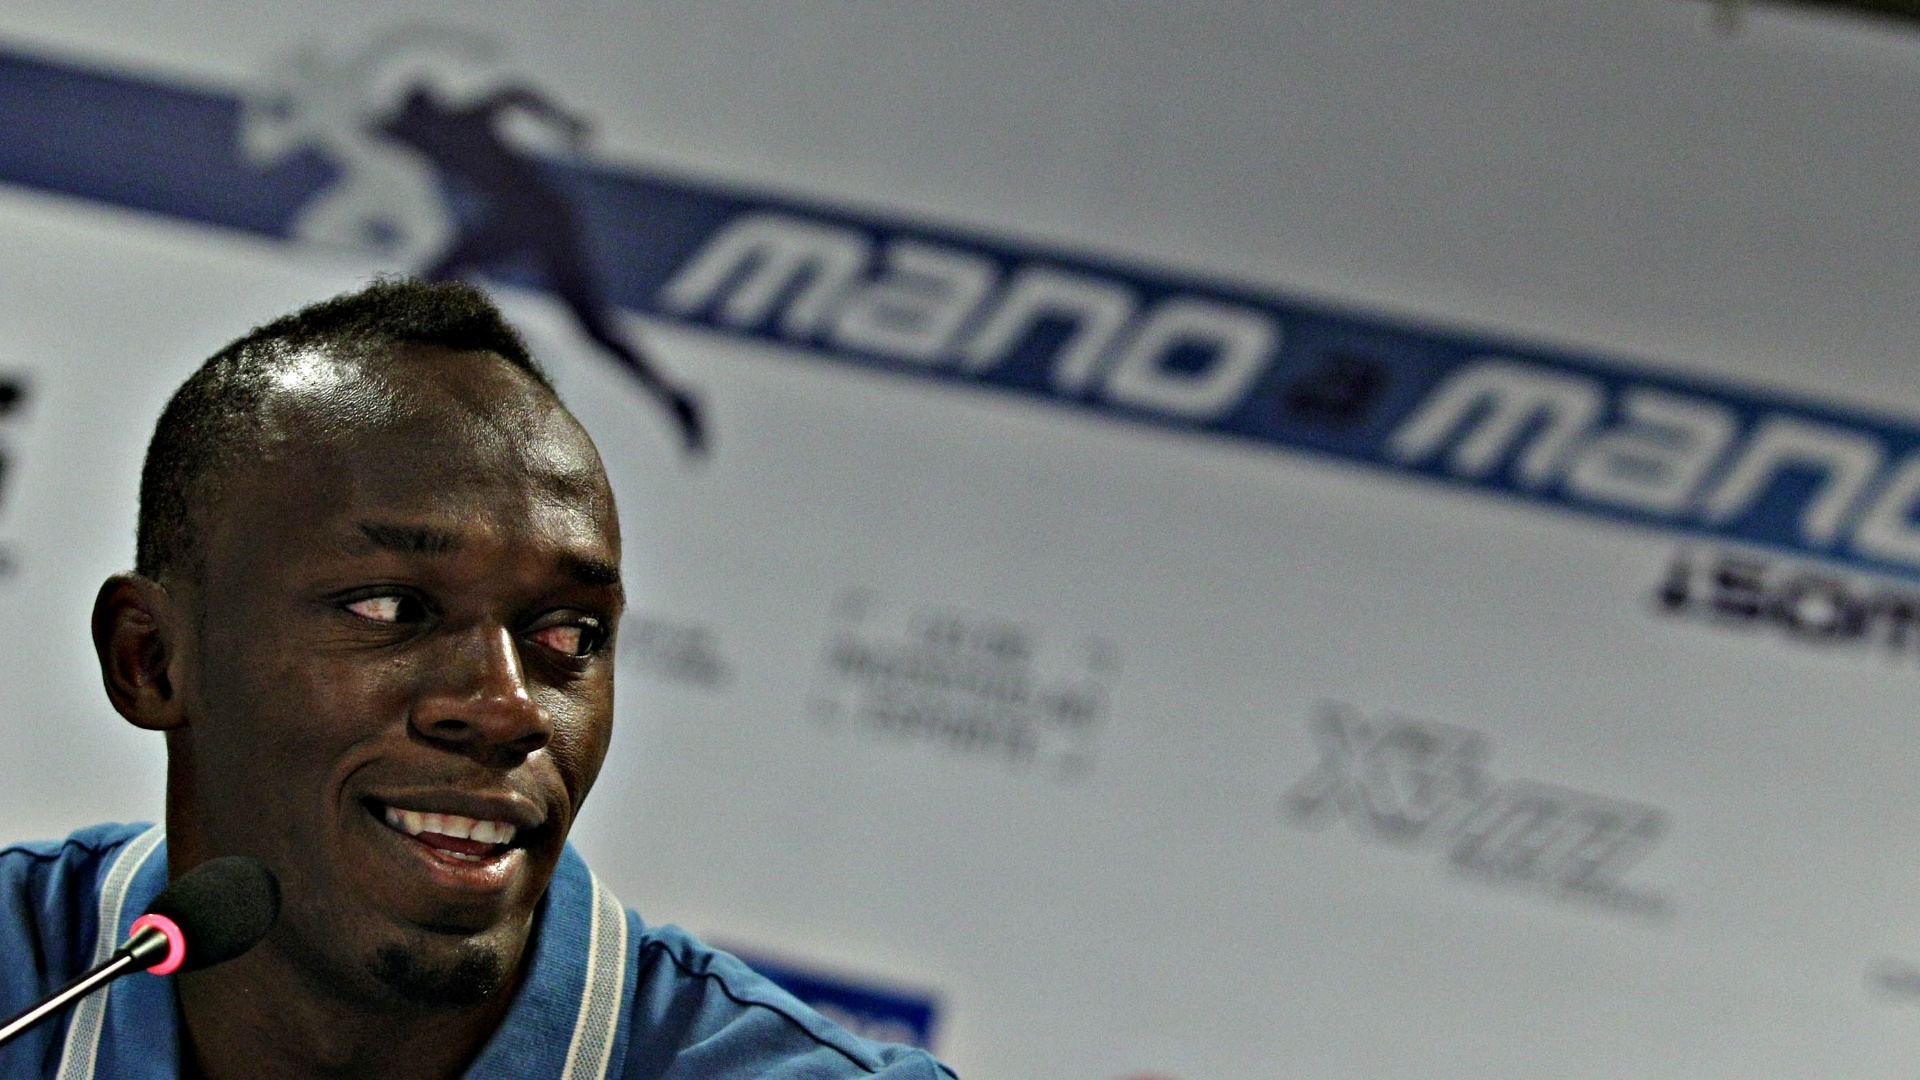 28.mar.2013 - Durante coletiva nesta quinta-feira, Usain Bolt disse que 